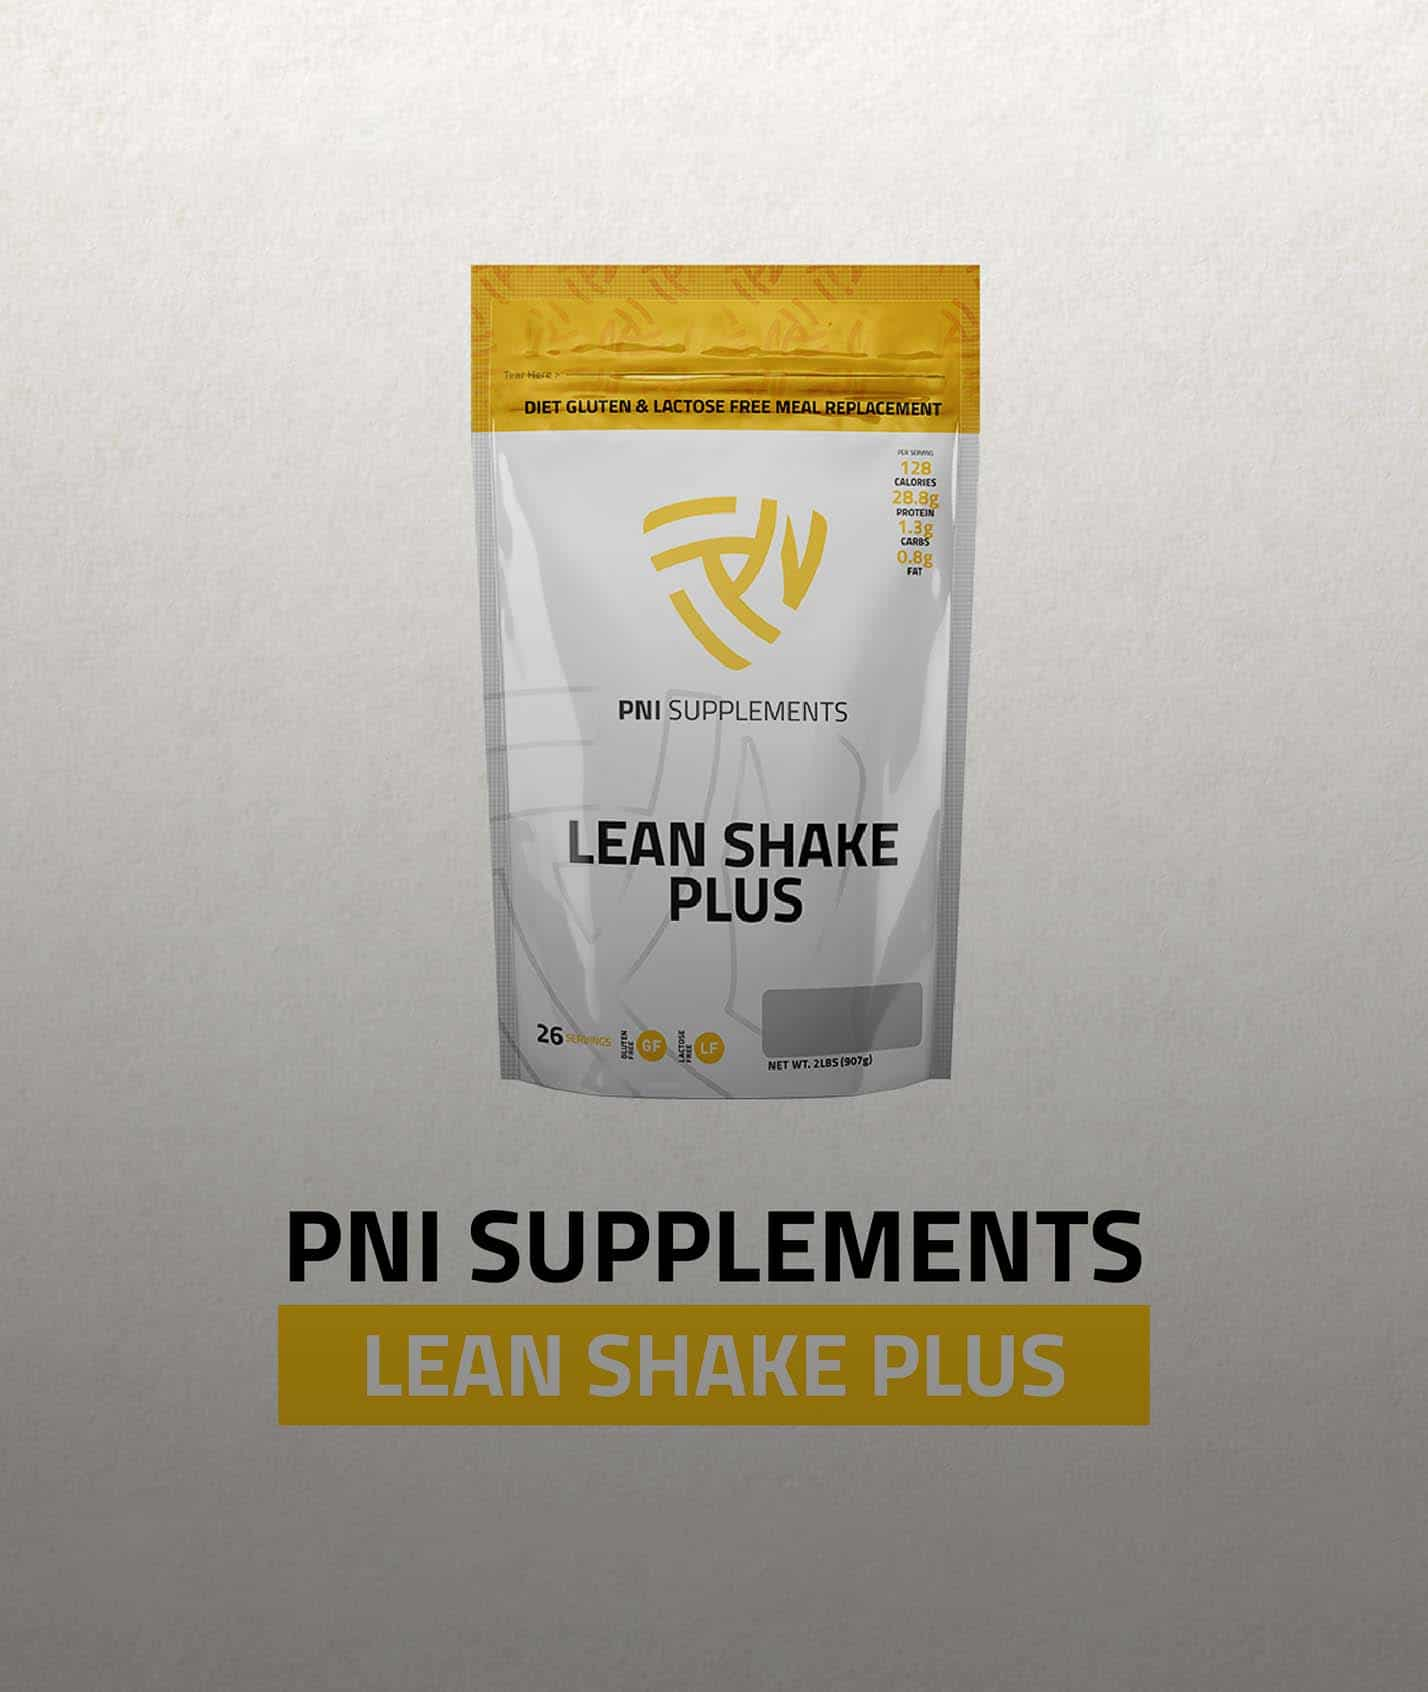 Ever Increasing Circles works with PNI Supplements